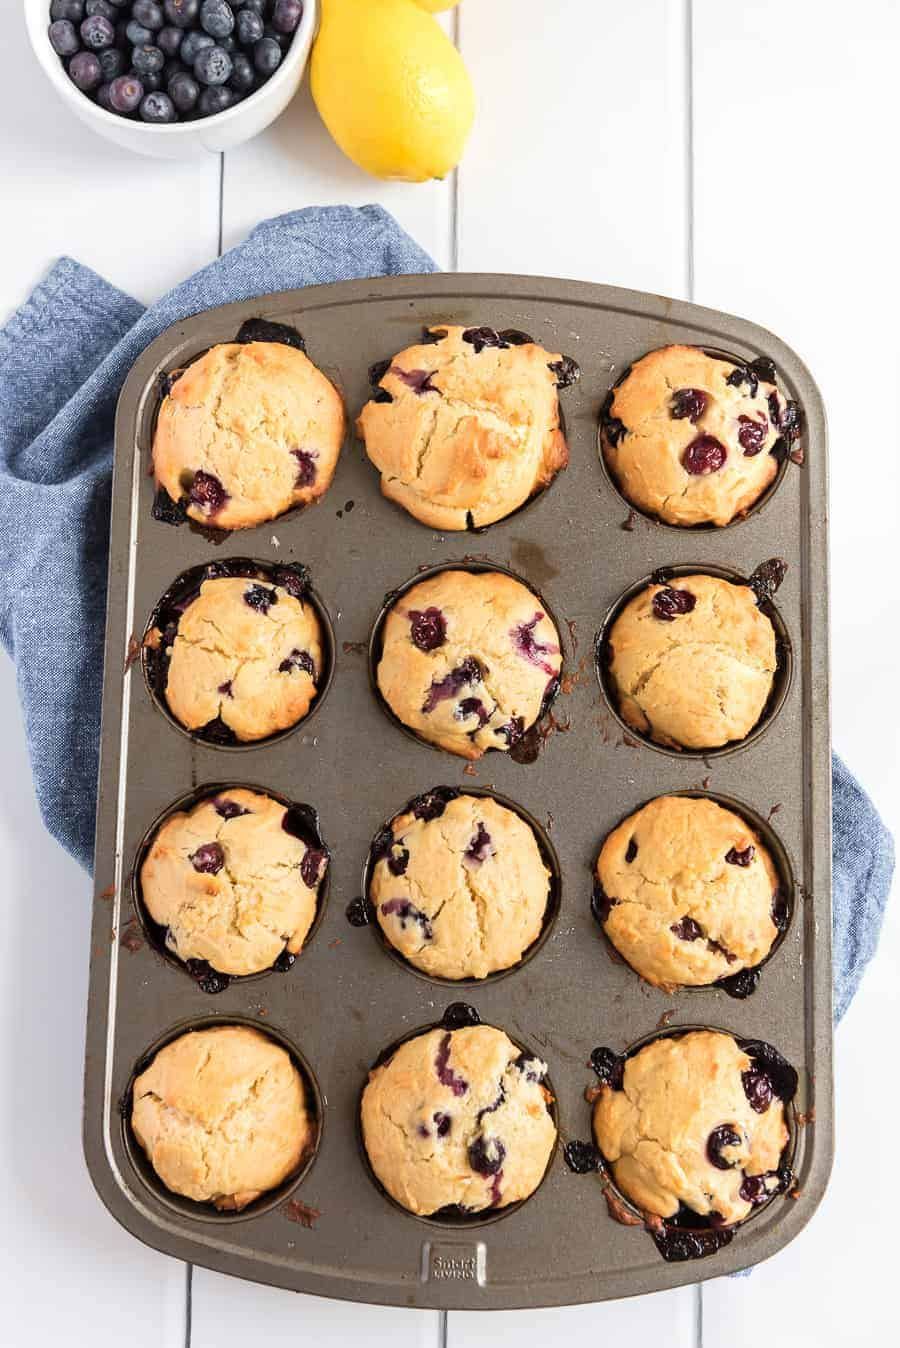 How To Make Blueberry Lemon Muffins